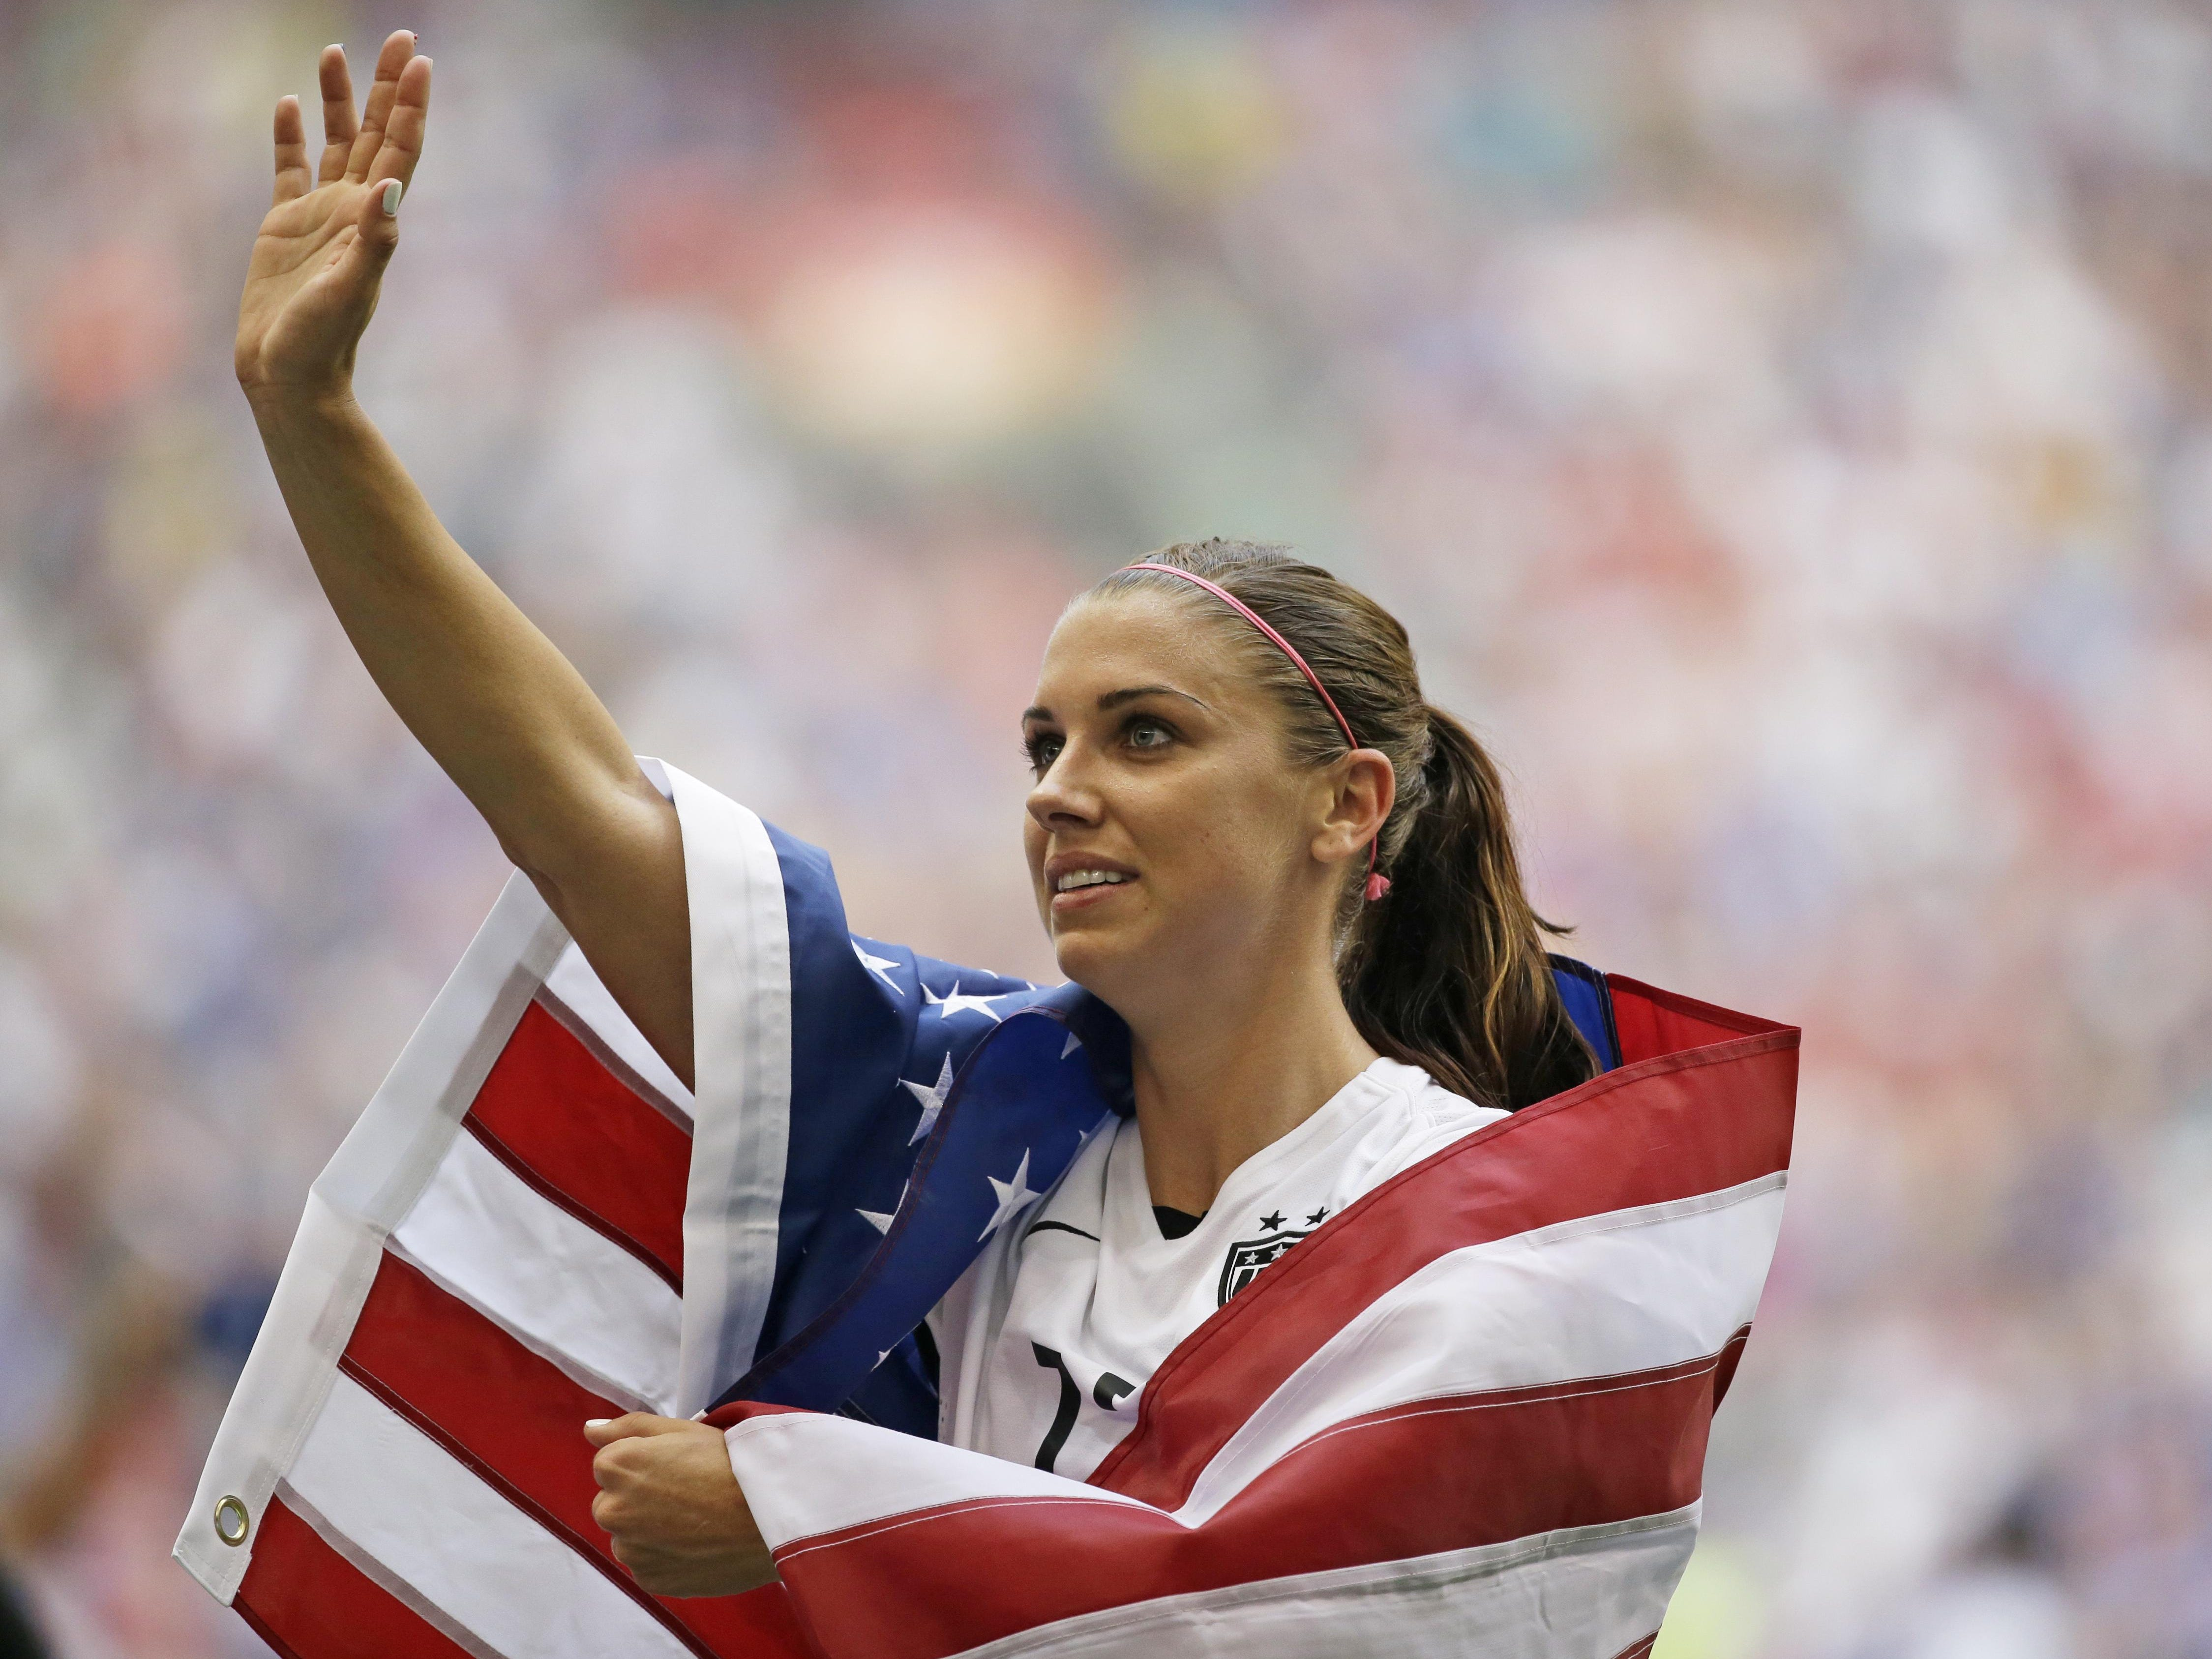 United States' Alex Morgan is draped in the U.S. flag as she waves to fans after the U.S. beat Japan 5-2 in the FIFA Women's World Cup soccer championship in Vancouver, British Columbia, Canada, Sunday, July 5, 2015.